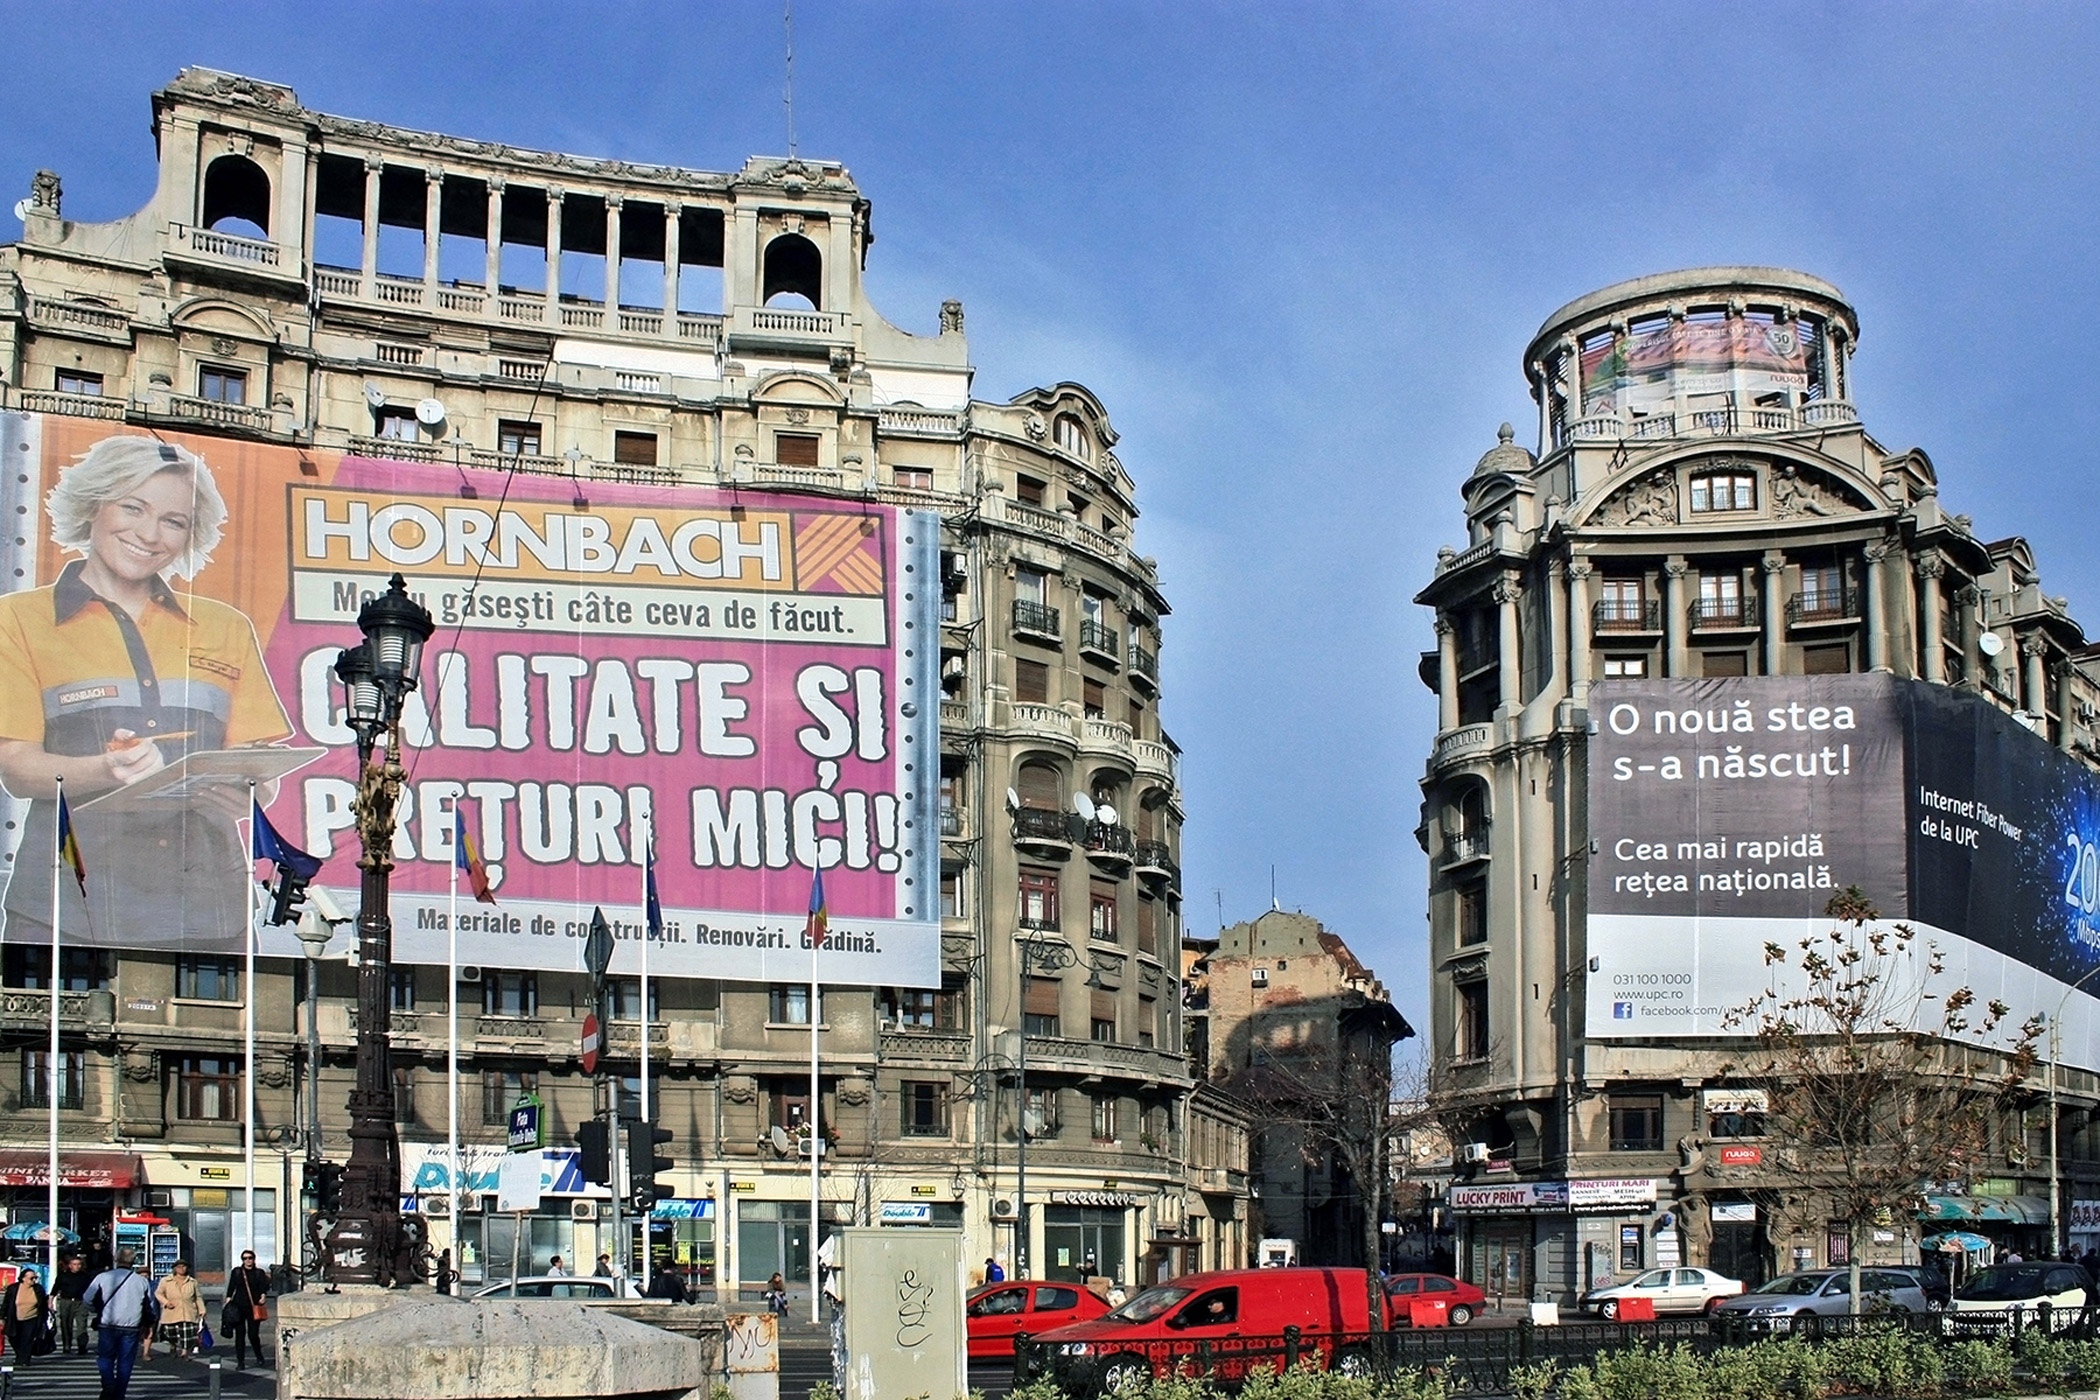 Romania, Bucharest: The urban environment of Bucharest is threatened by abandonment and demolition of historic buildings, uncontrolled development, and inappropriate rehabilitation.